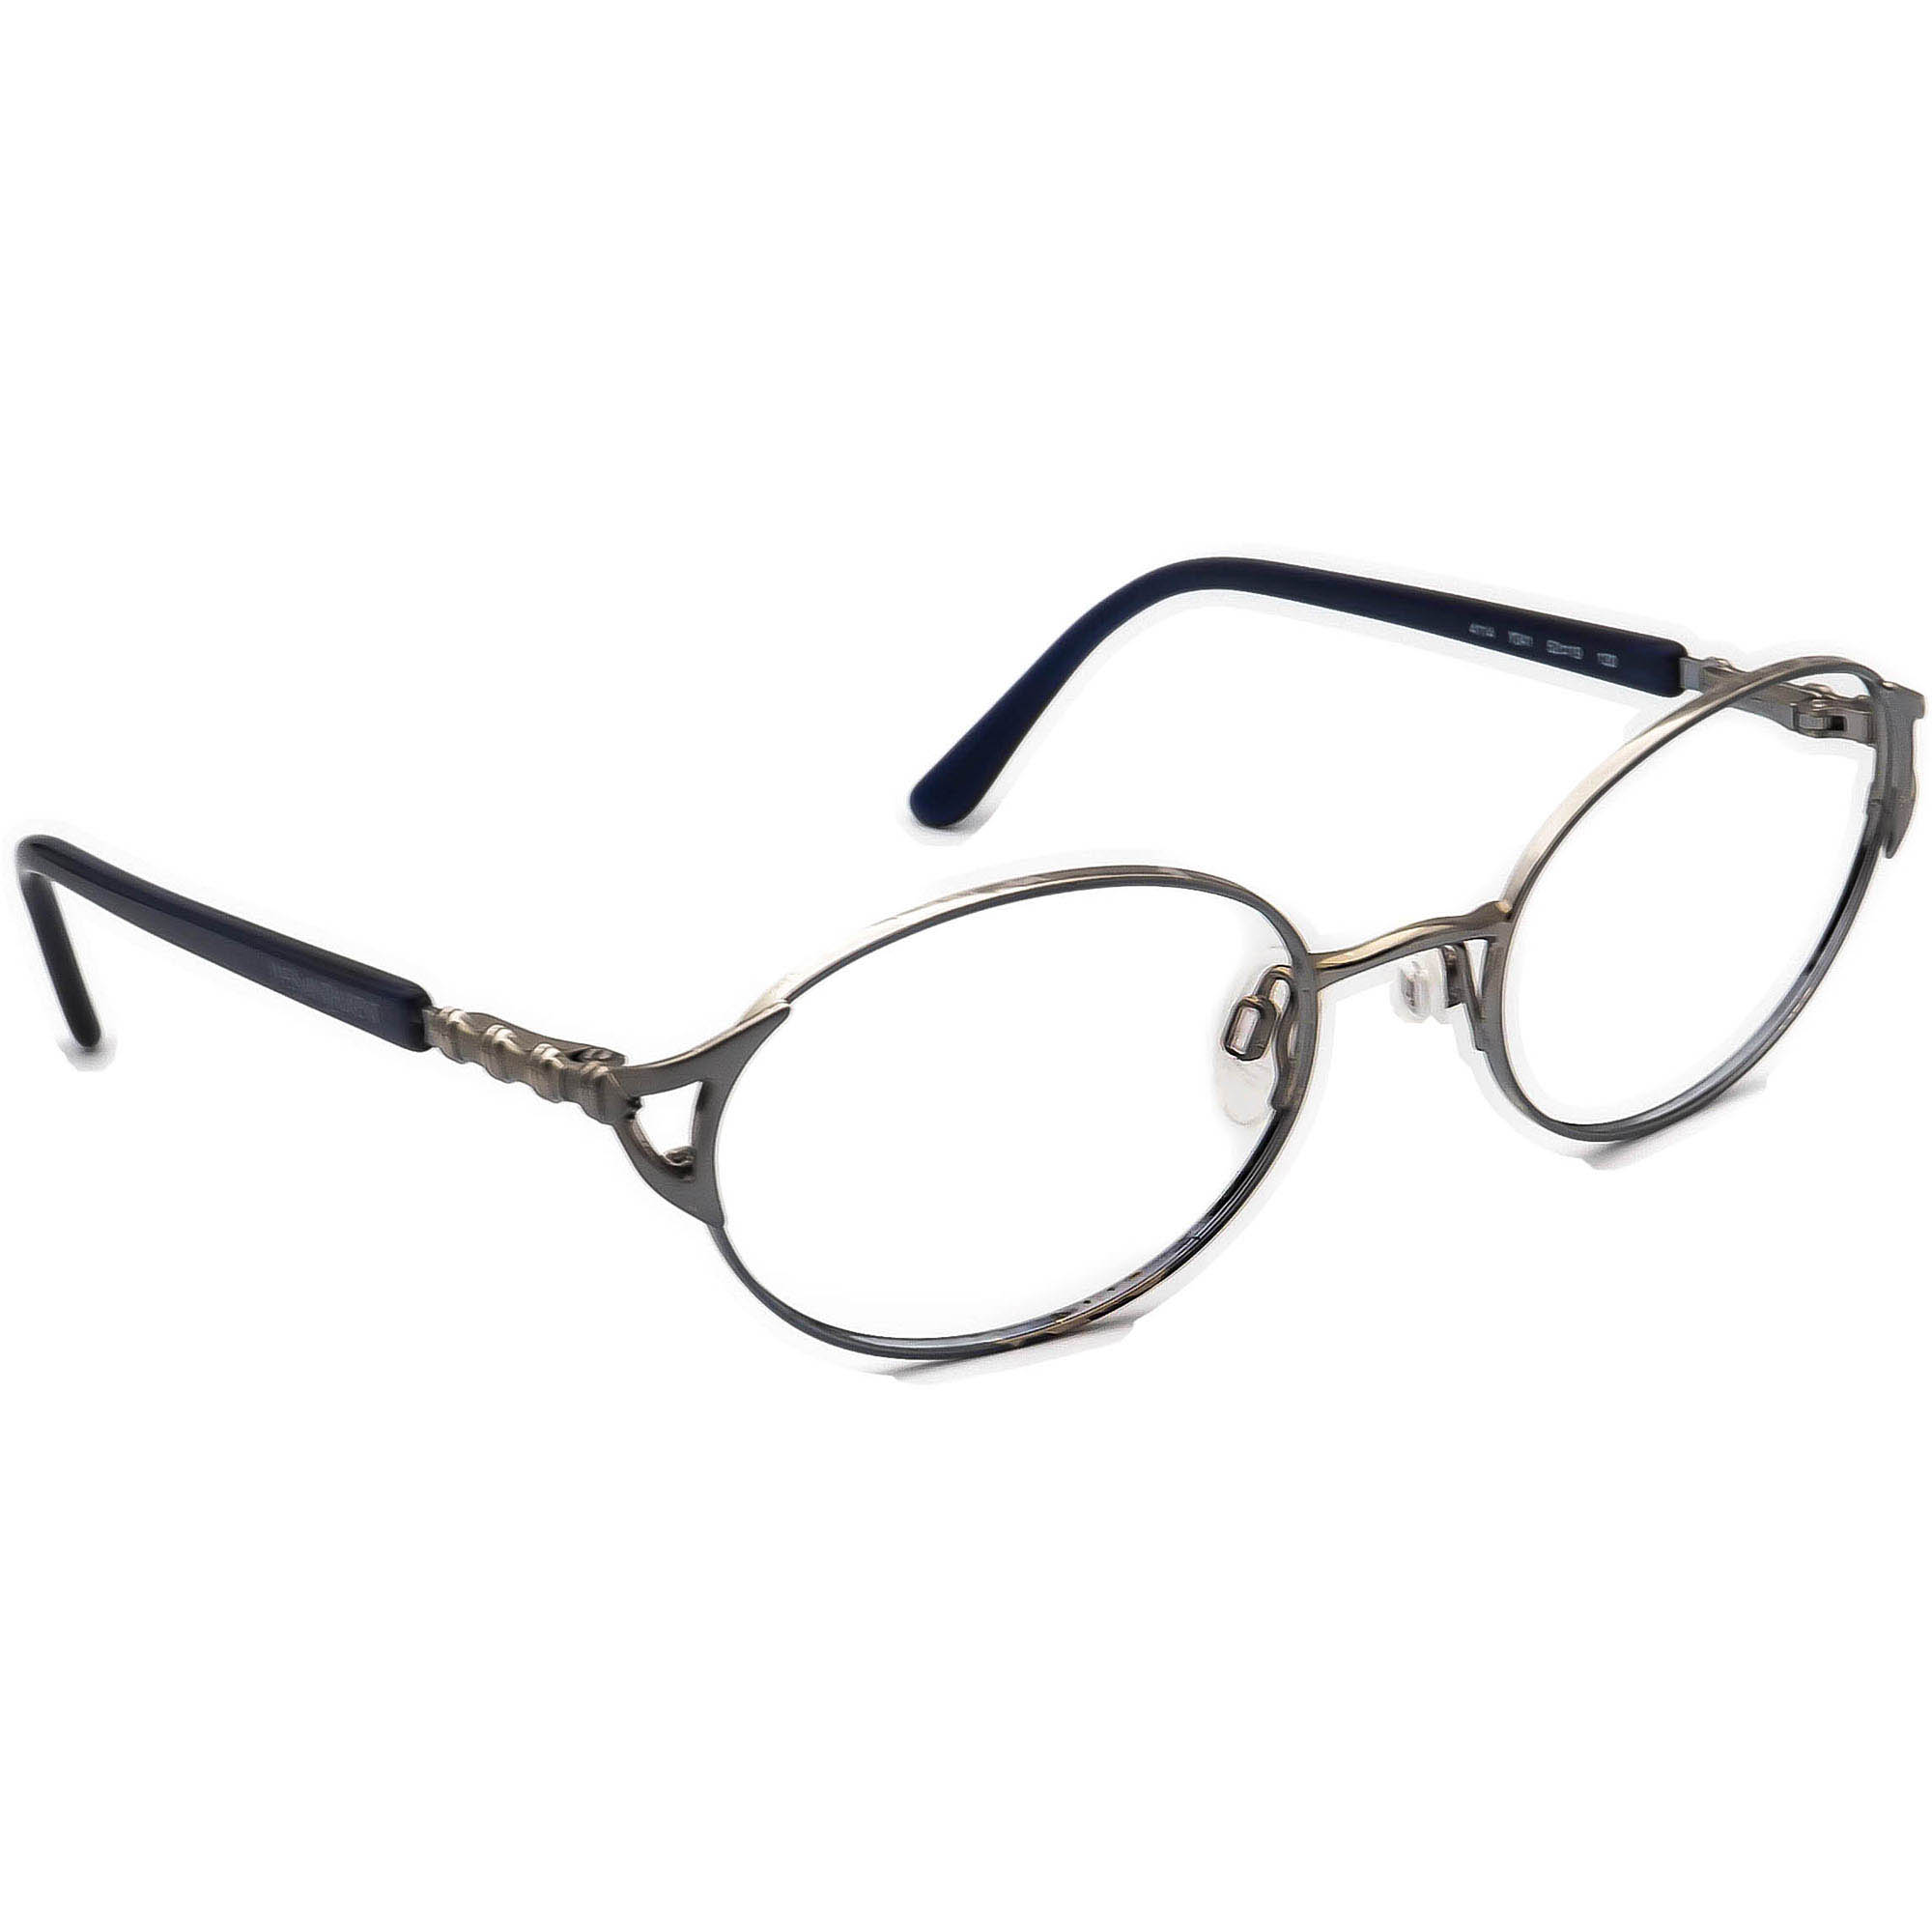 Yves Saint Laurent 4114 y341 Eyeglasses